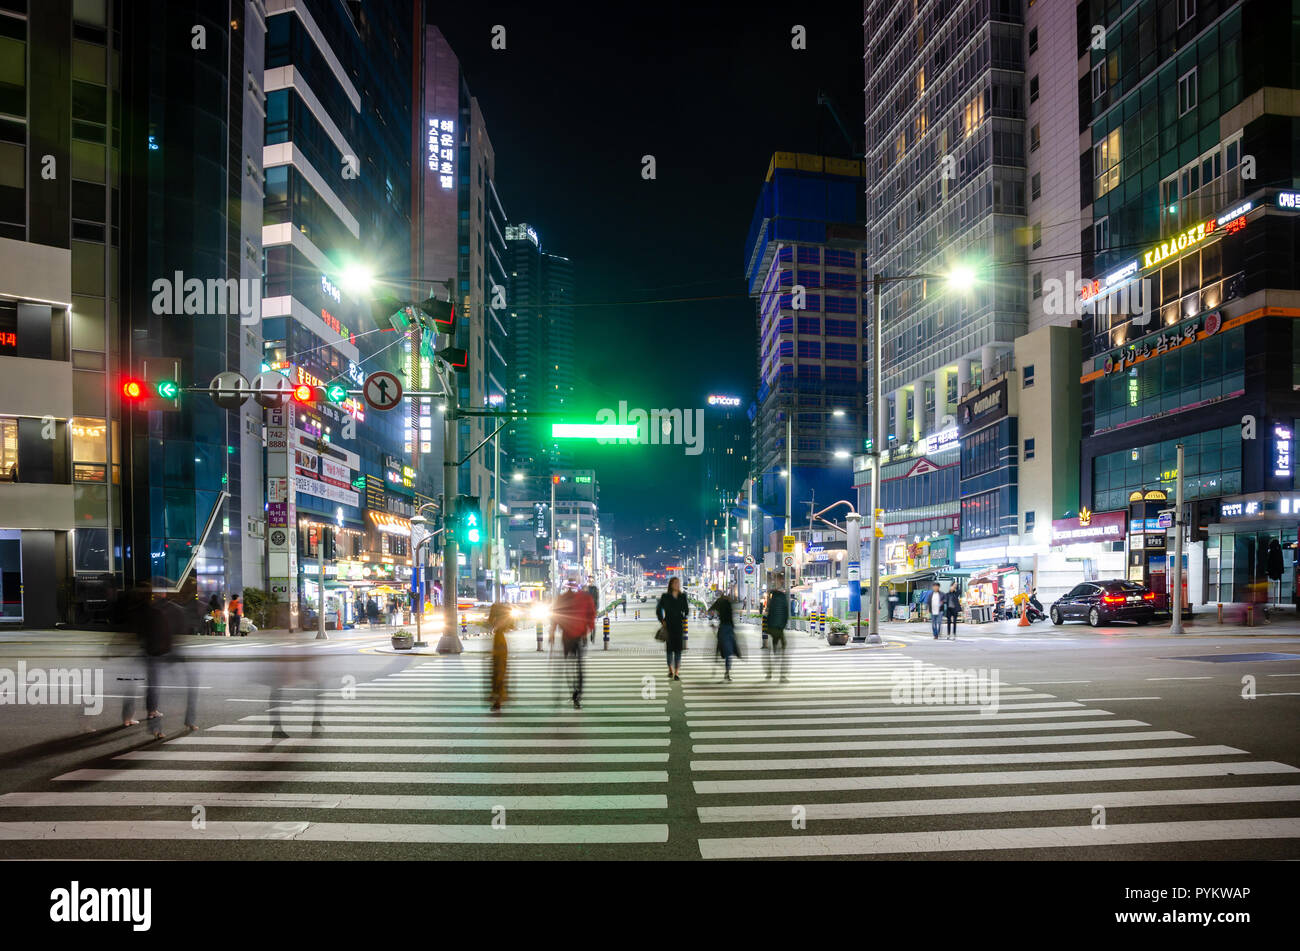 people-cross-a-pedestrian-crossing-at-night-in-haeundae-busan-south-korea-behind-the-street-is-full-or-bright-lights-shining-in-the-dark-PYKWAP.jpg